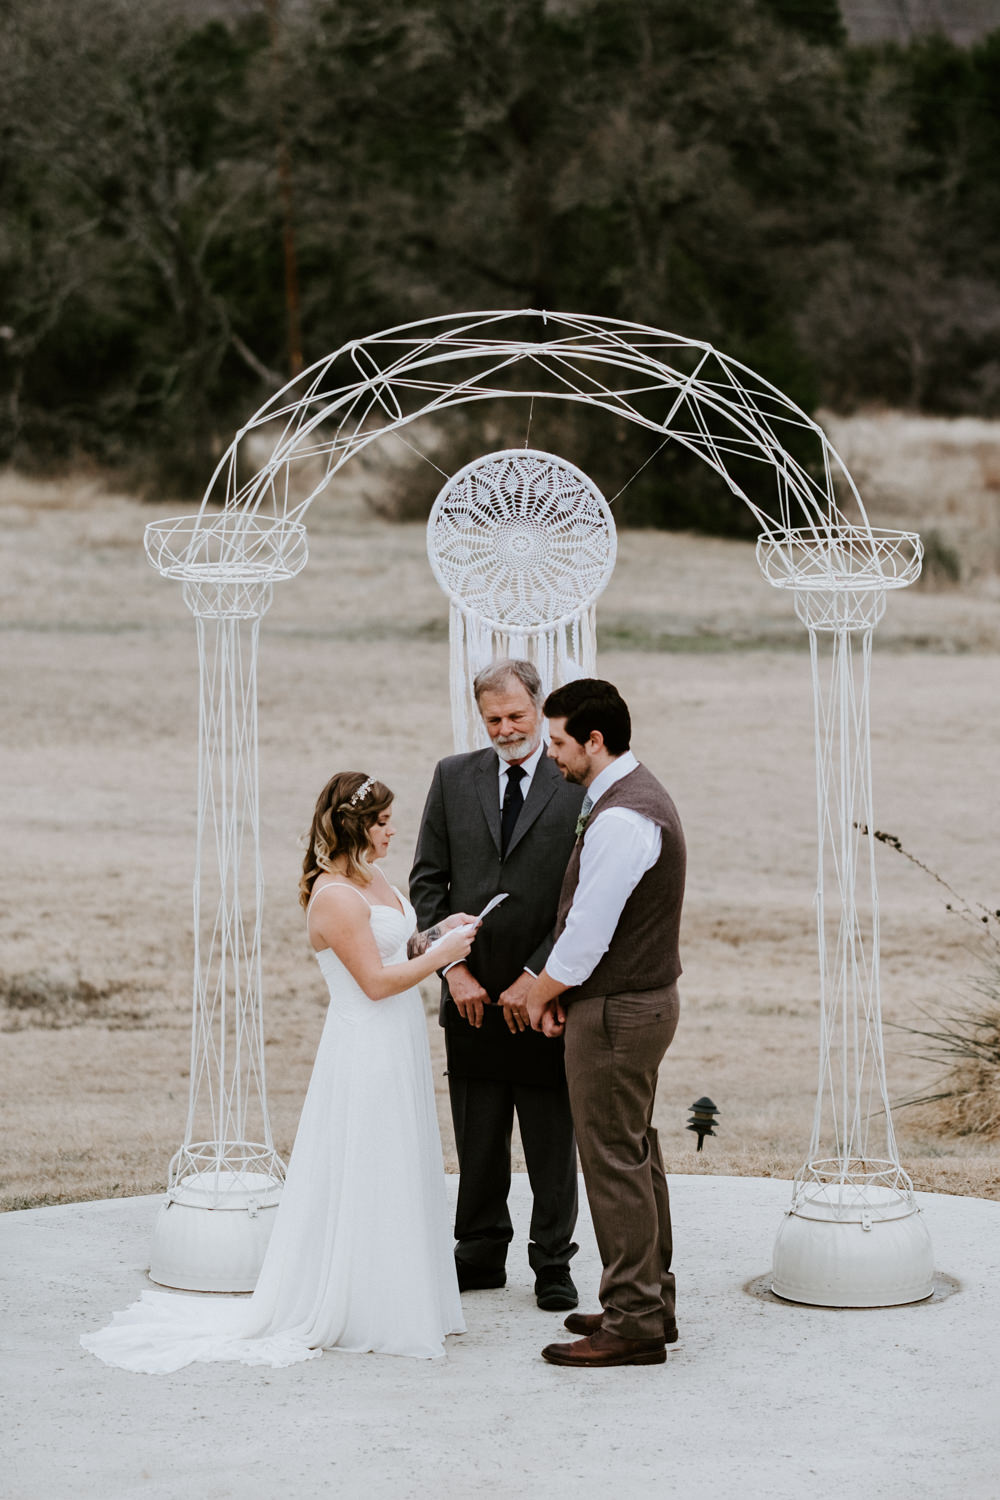 Wedding ceremony photography from Donny Tidmore